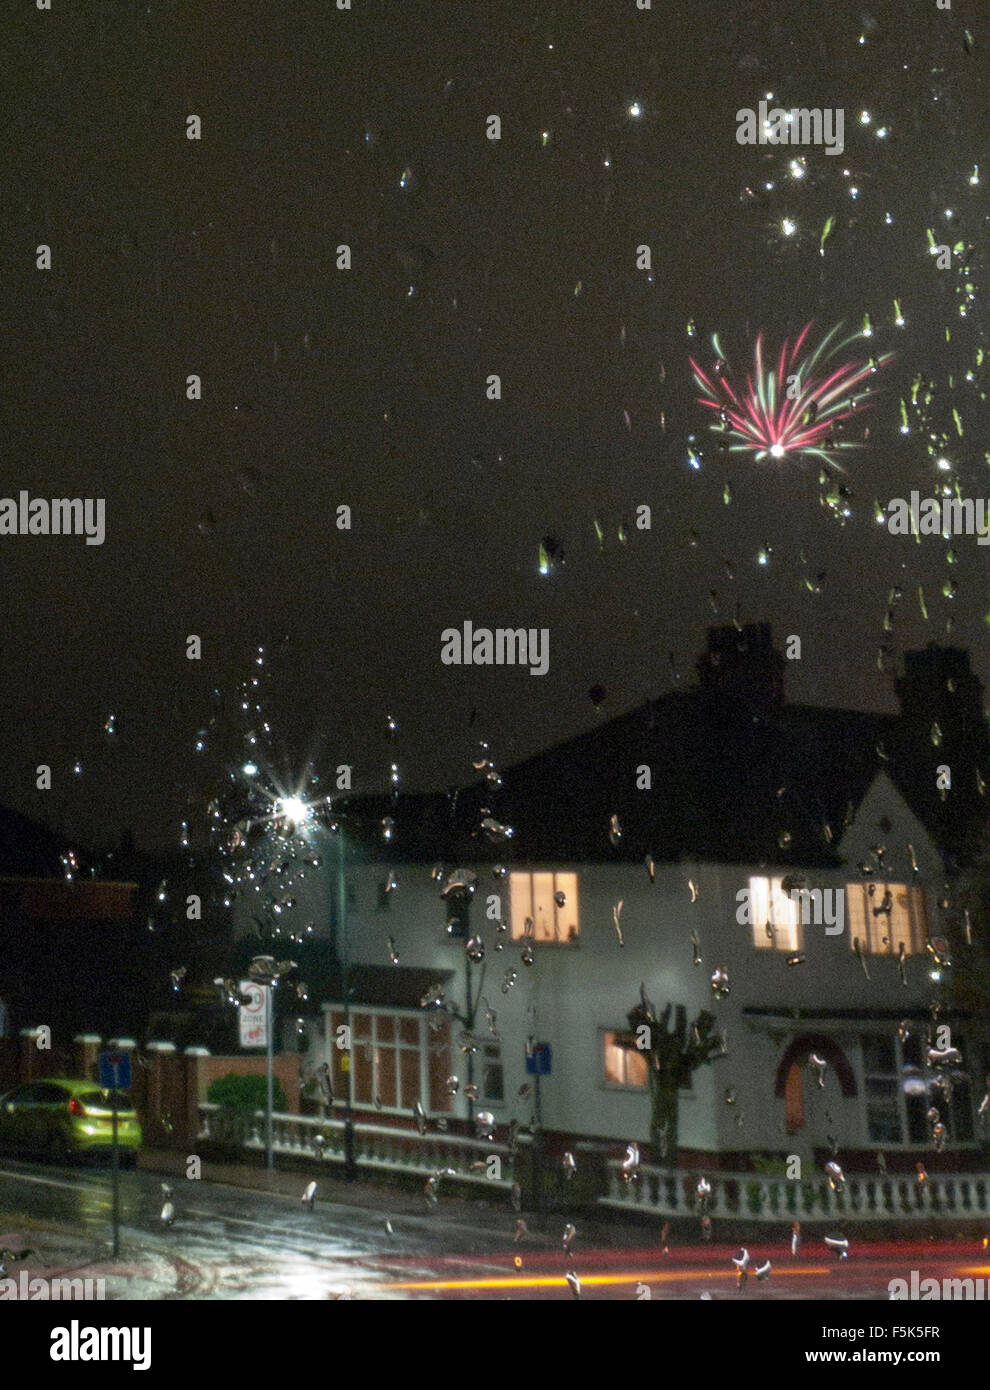 Rained off. Firework night looking out through a rain speckled  window. - Stock Image